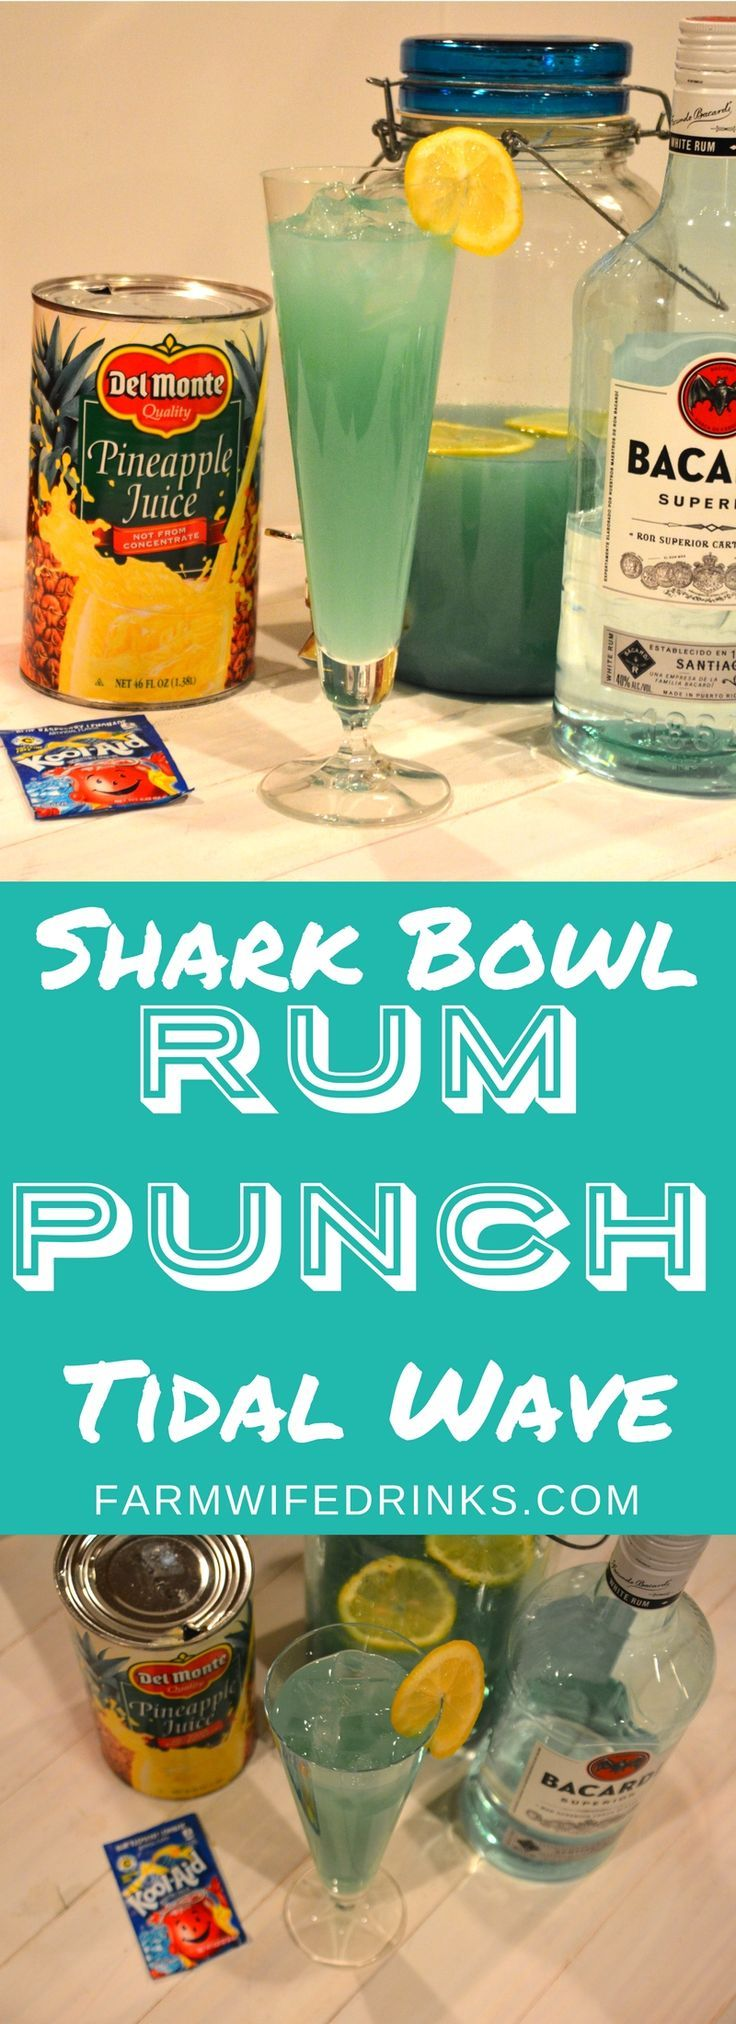 Well, this rum punch - tidal wave or shark bowl punch will bring back memories of sitting around a fishbowl filled with punch and 20 straws. #Rum #RumPunch #Bacardi #Sharkbowl